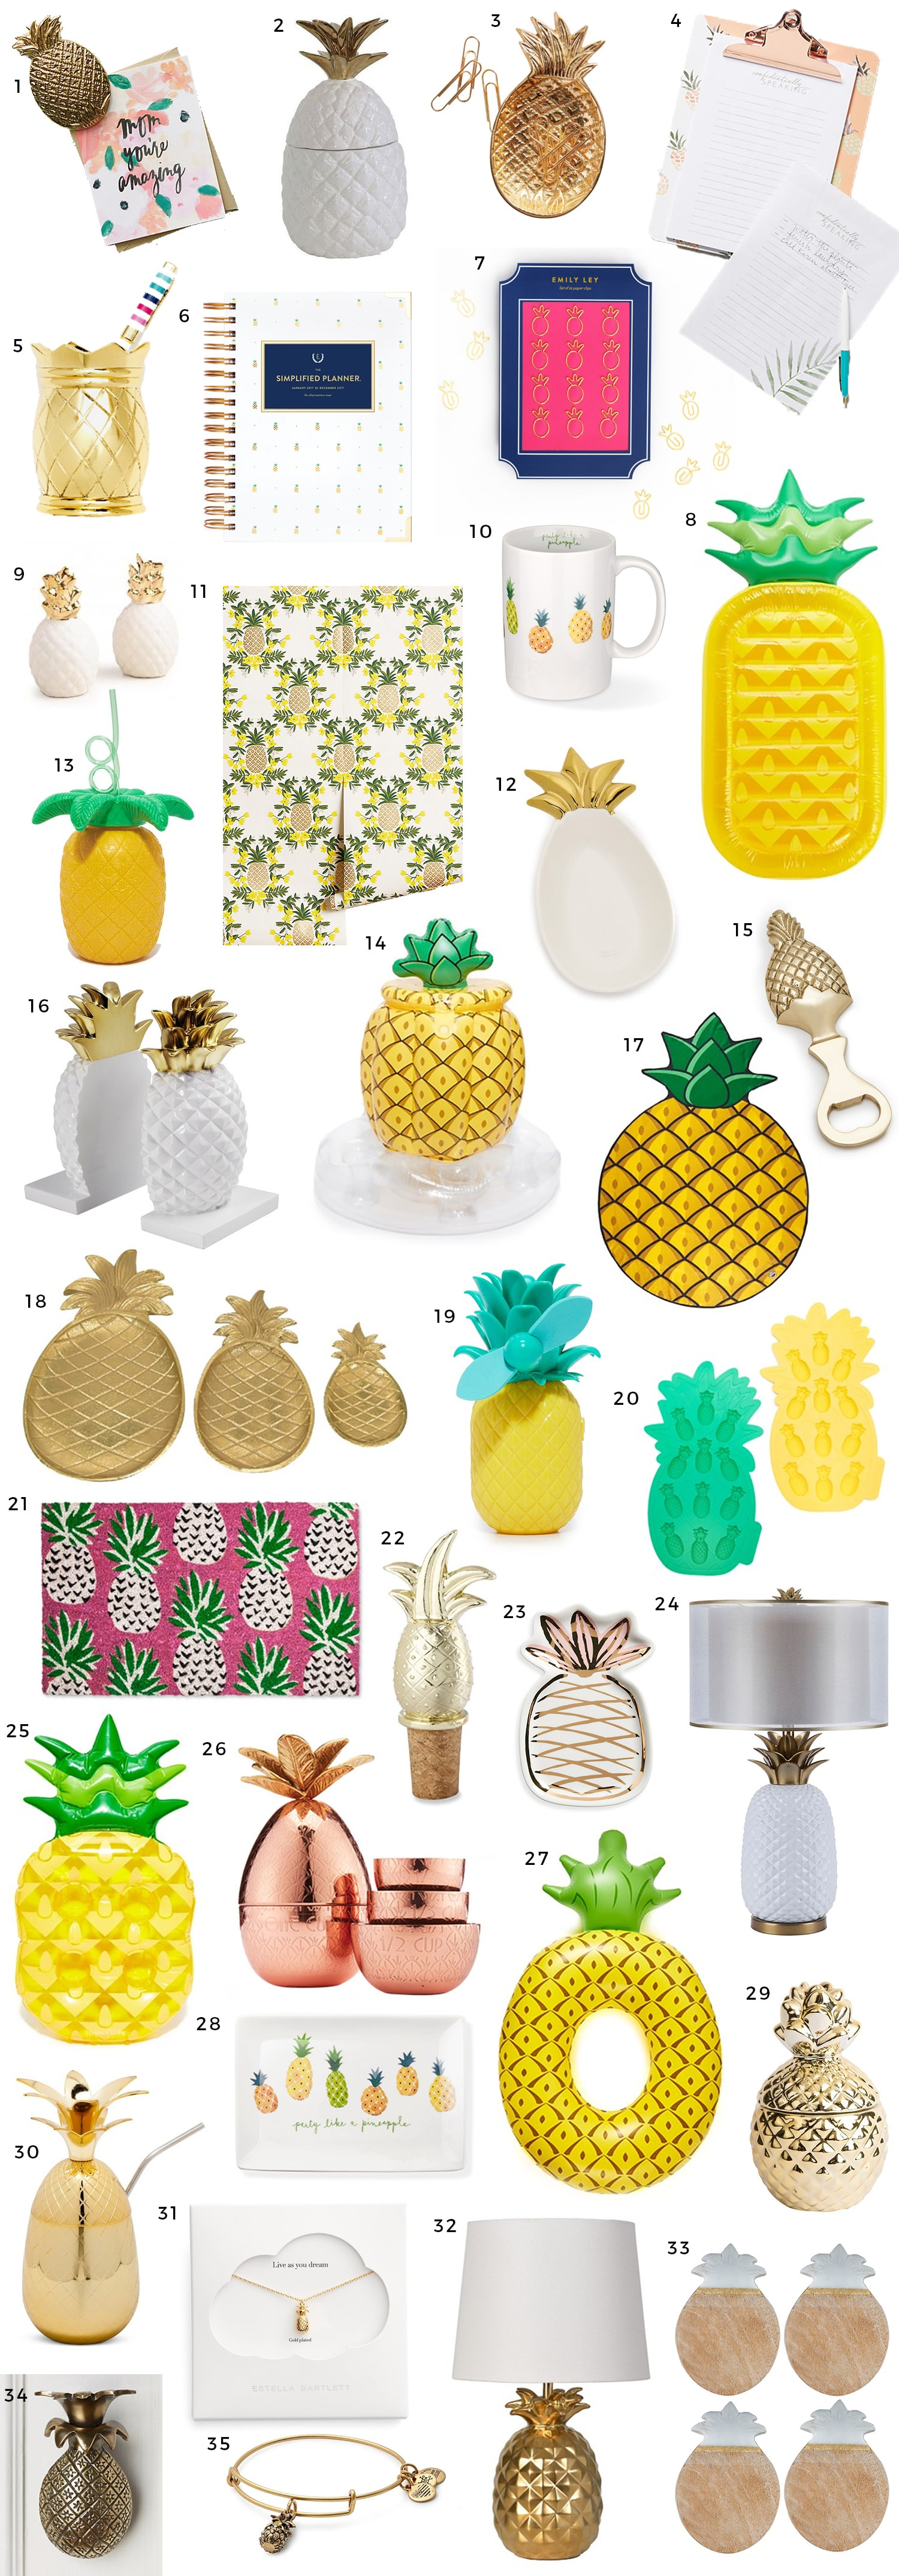 The Best Pineapple Home Decor, Office, And Gift Ideas | Shopbop Spring Sale